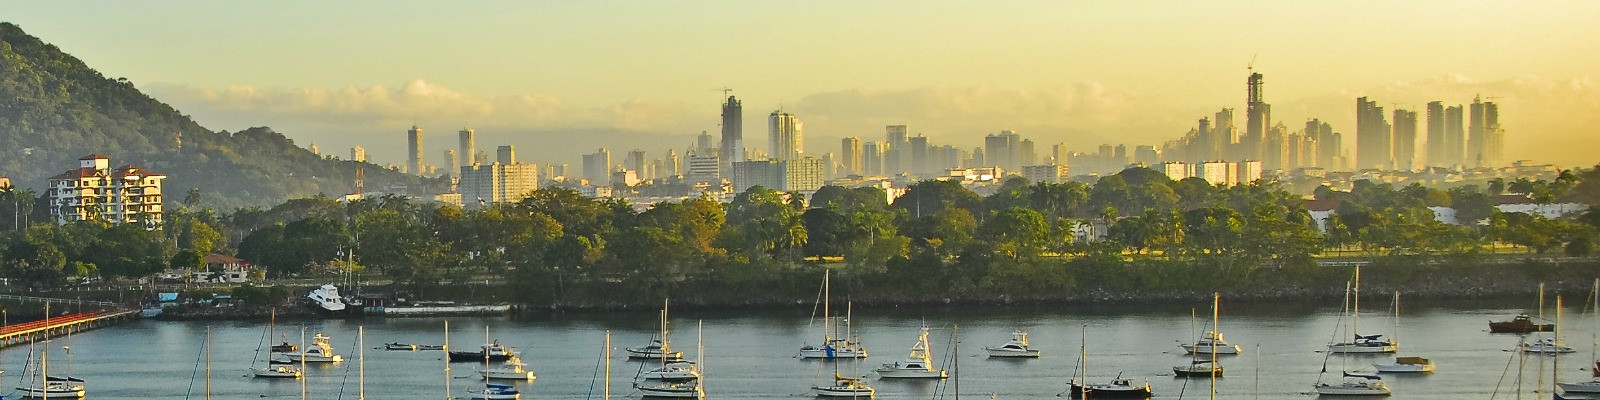 Panama Tours (photo by Geoff Gallice)